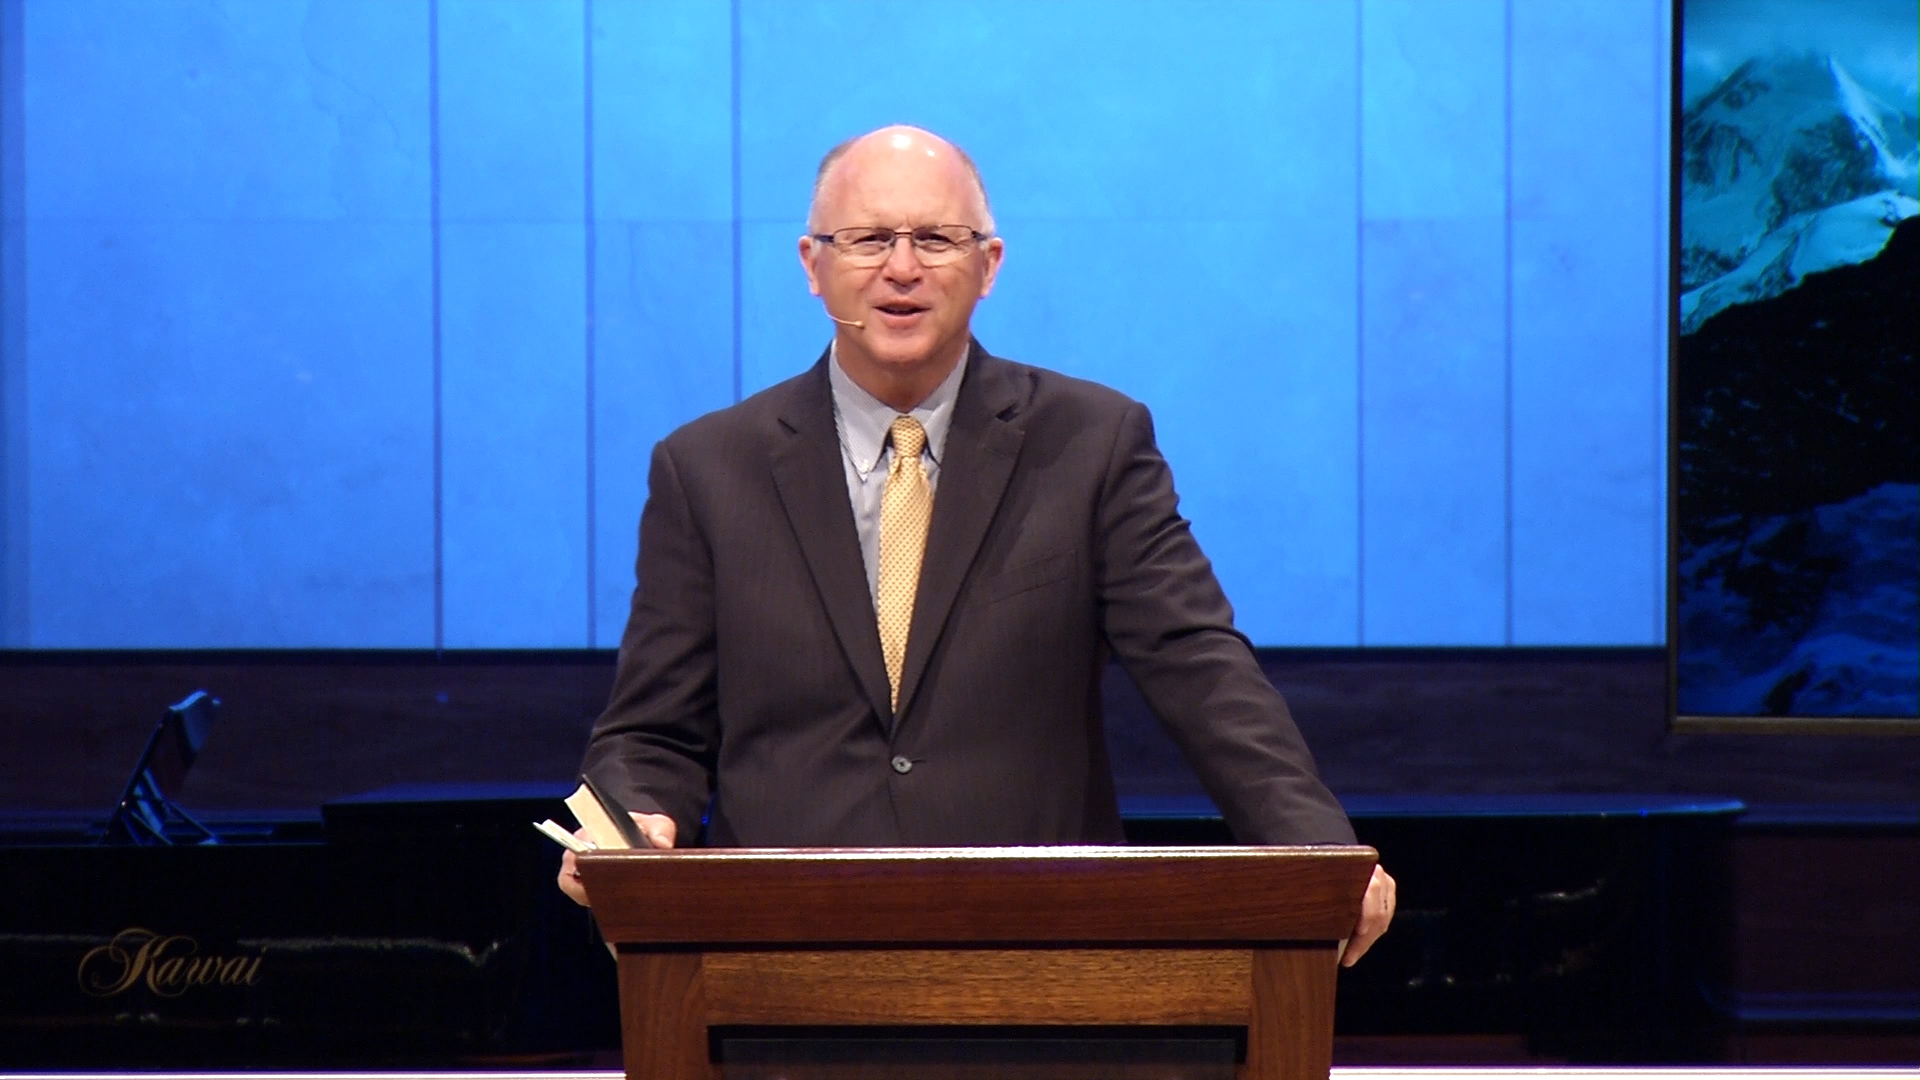 Pastor Paul Chappell: Victory Through Sovereignty